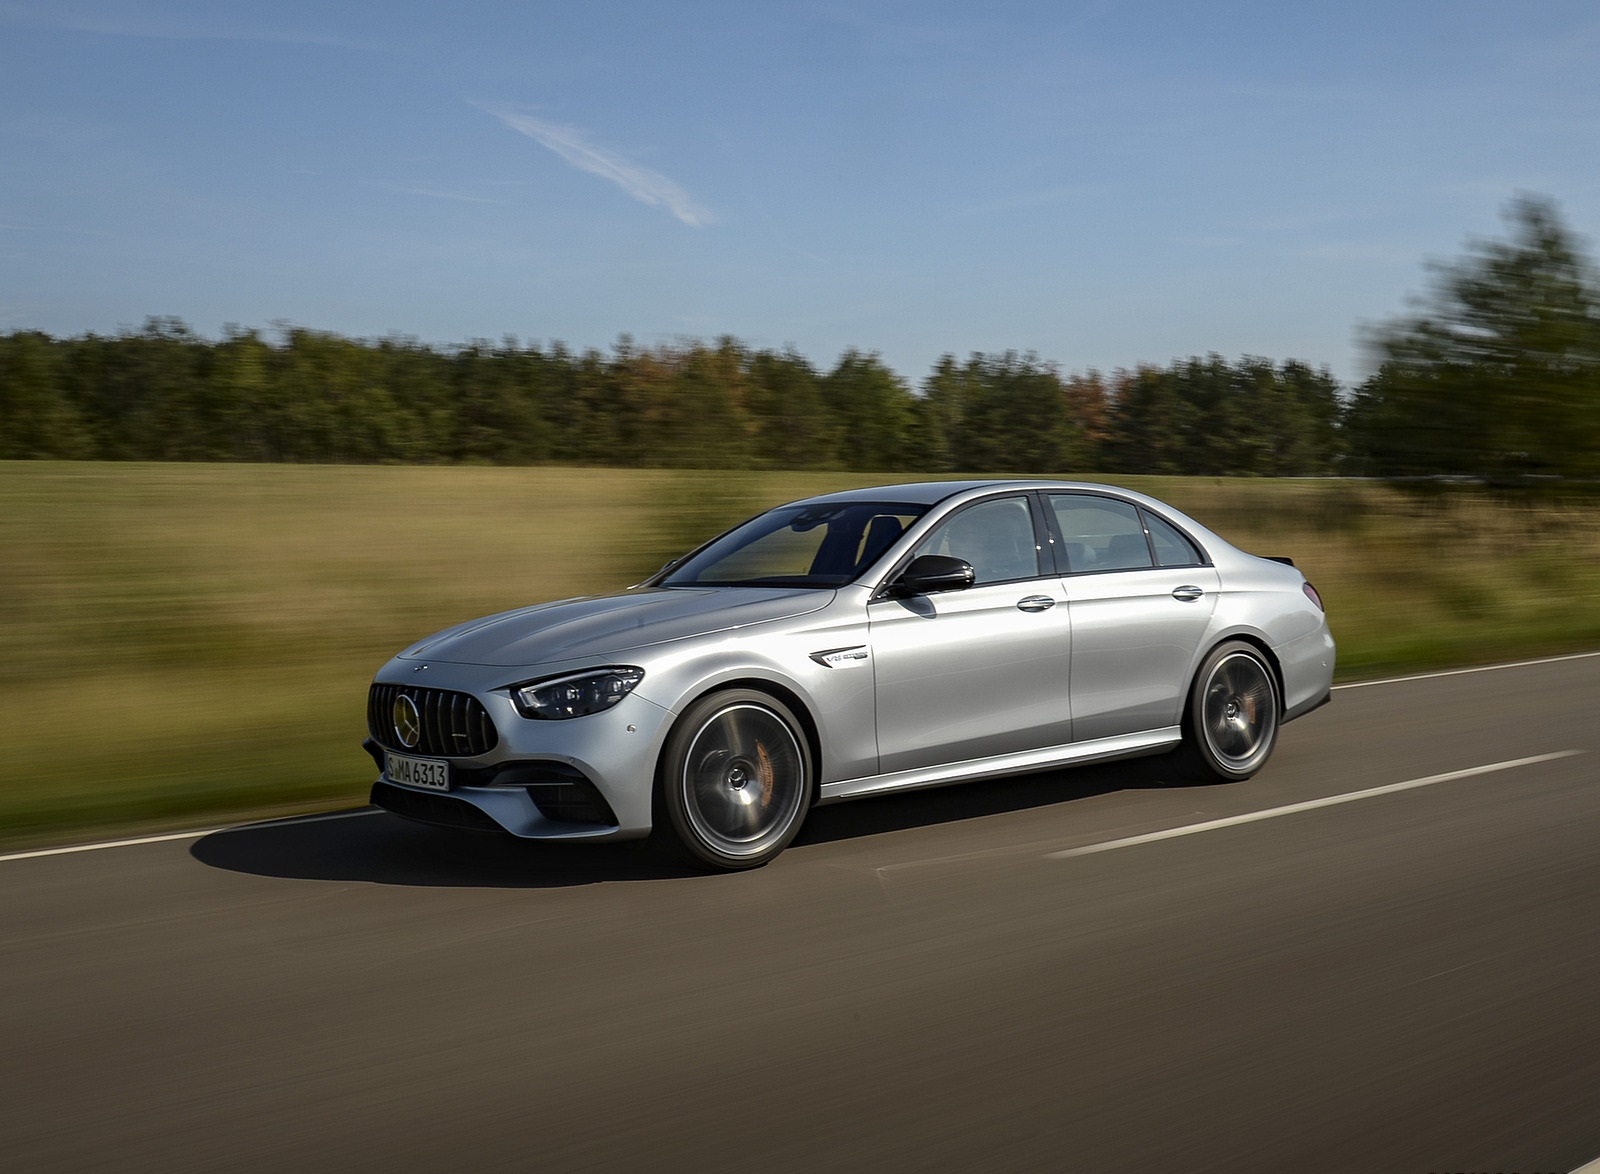 2021 Mercedes-AMG E 63 S 4MATIC+ (Color: High-Tech Silver Metallic) Front Three-Quarter Wallpapers (3)